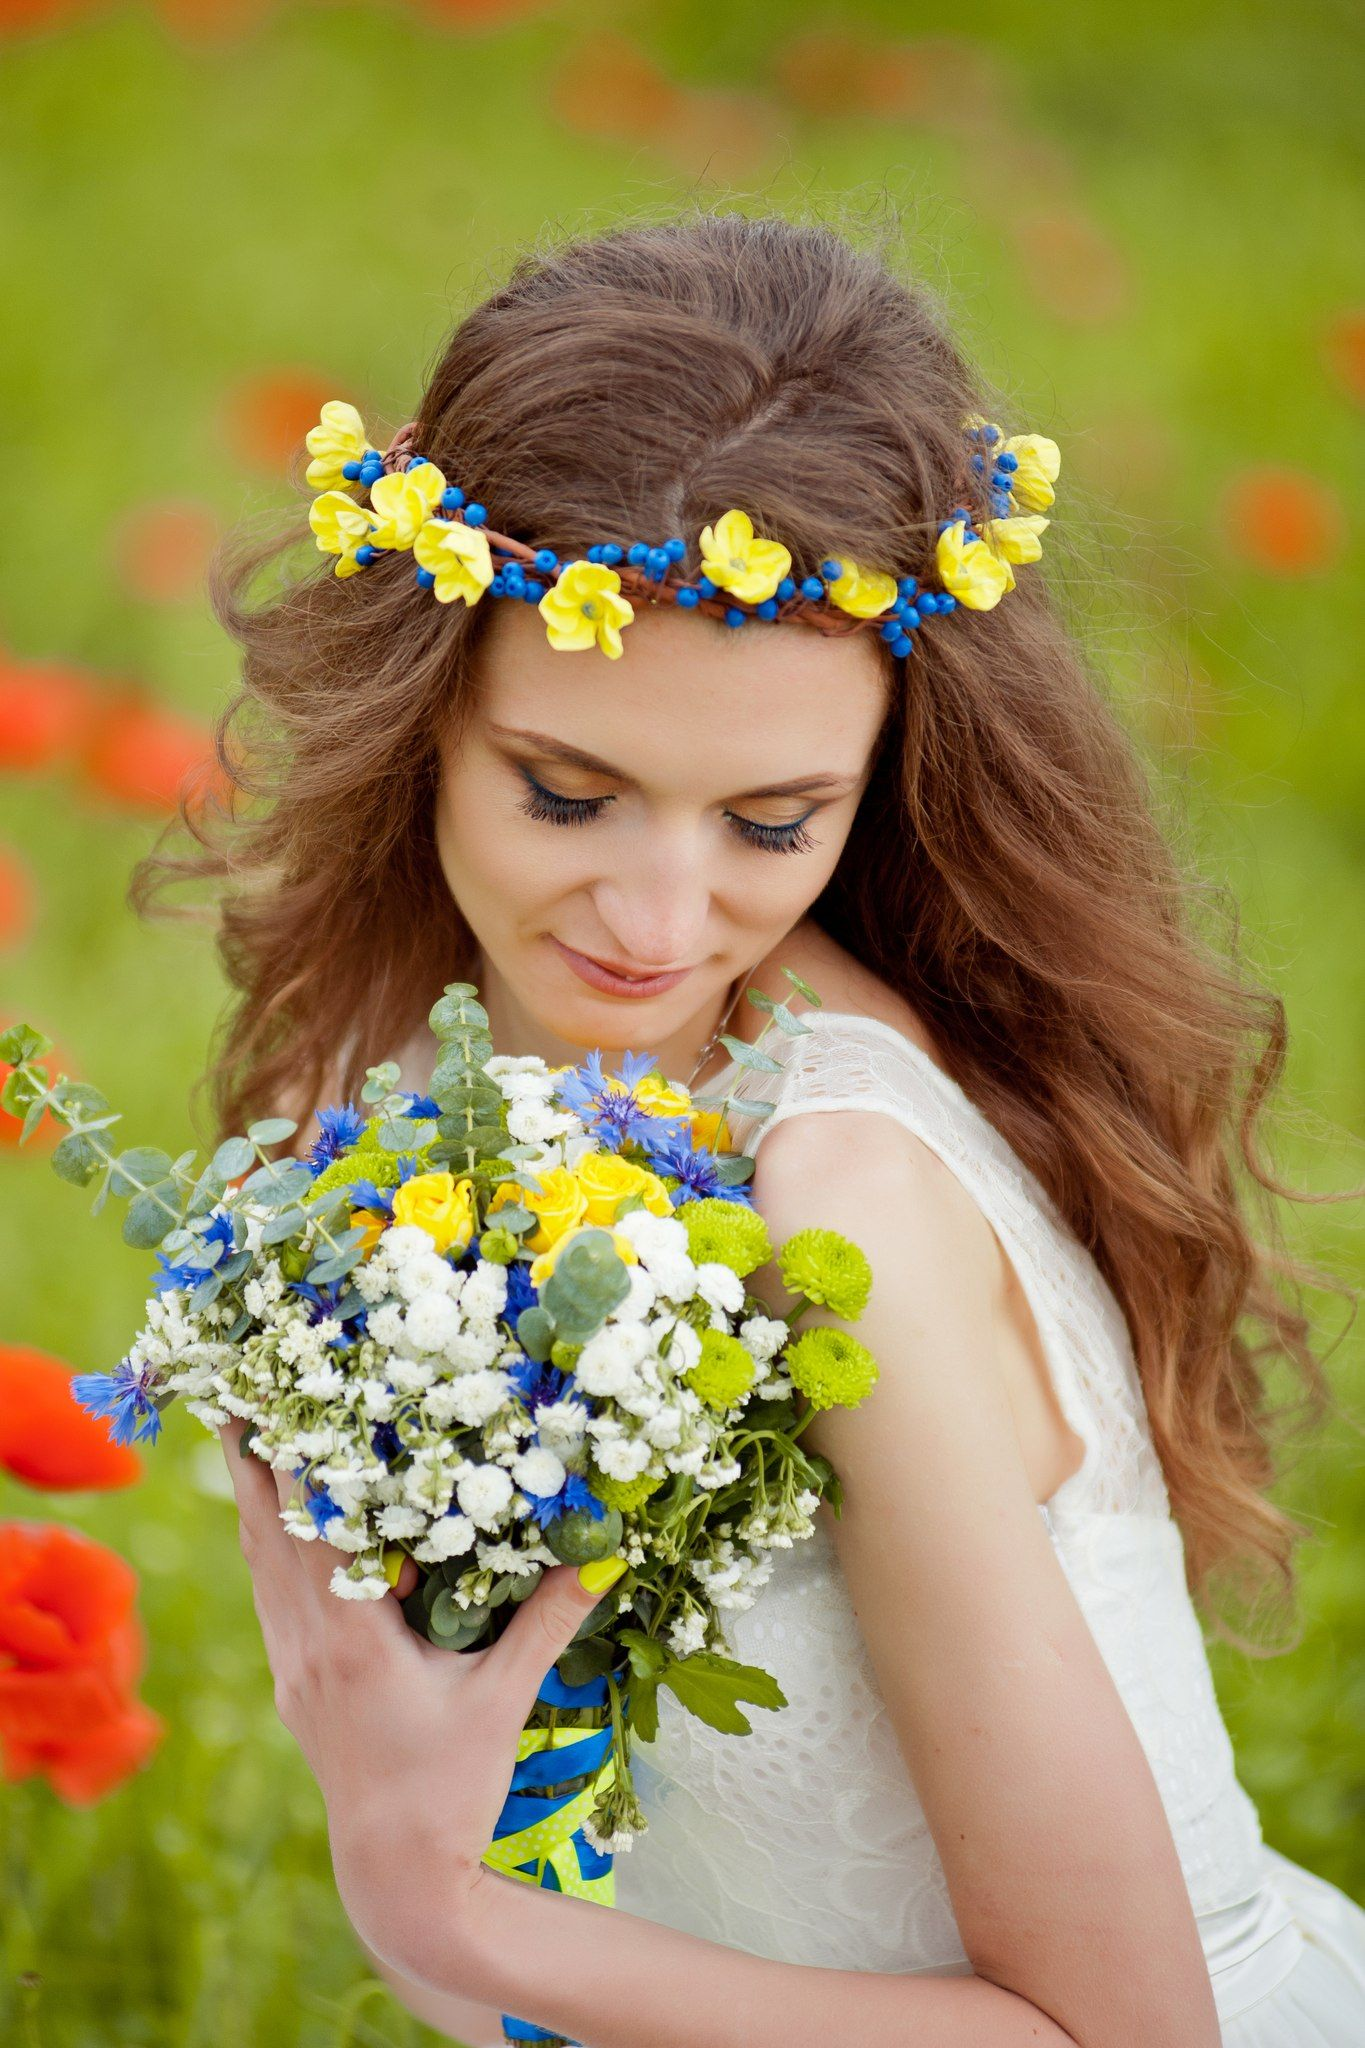 Flower headpiece bridal flower crown fairy tale wreaths boho flower headpiece bridal flower crown fairy tale wreaths boho wedding crown floral izmirmasajfo Image collections